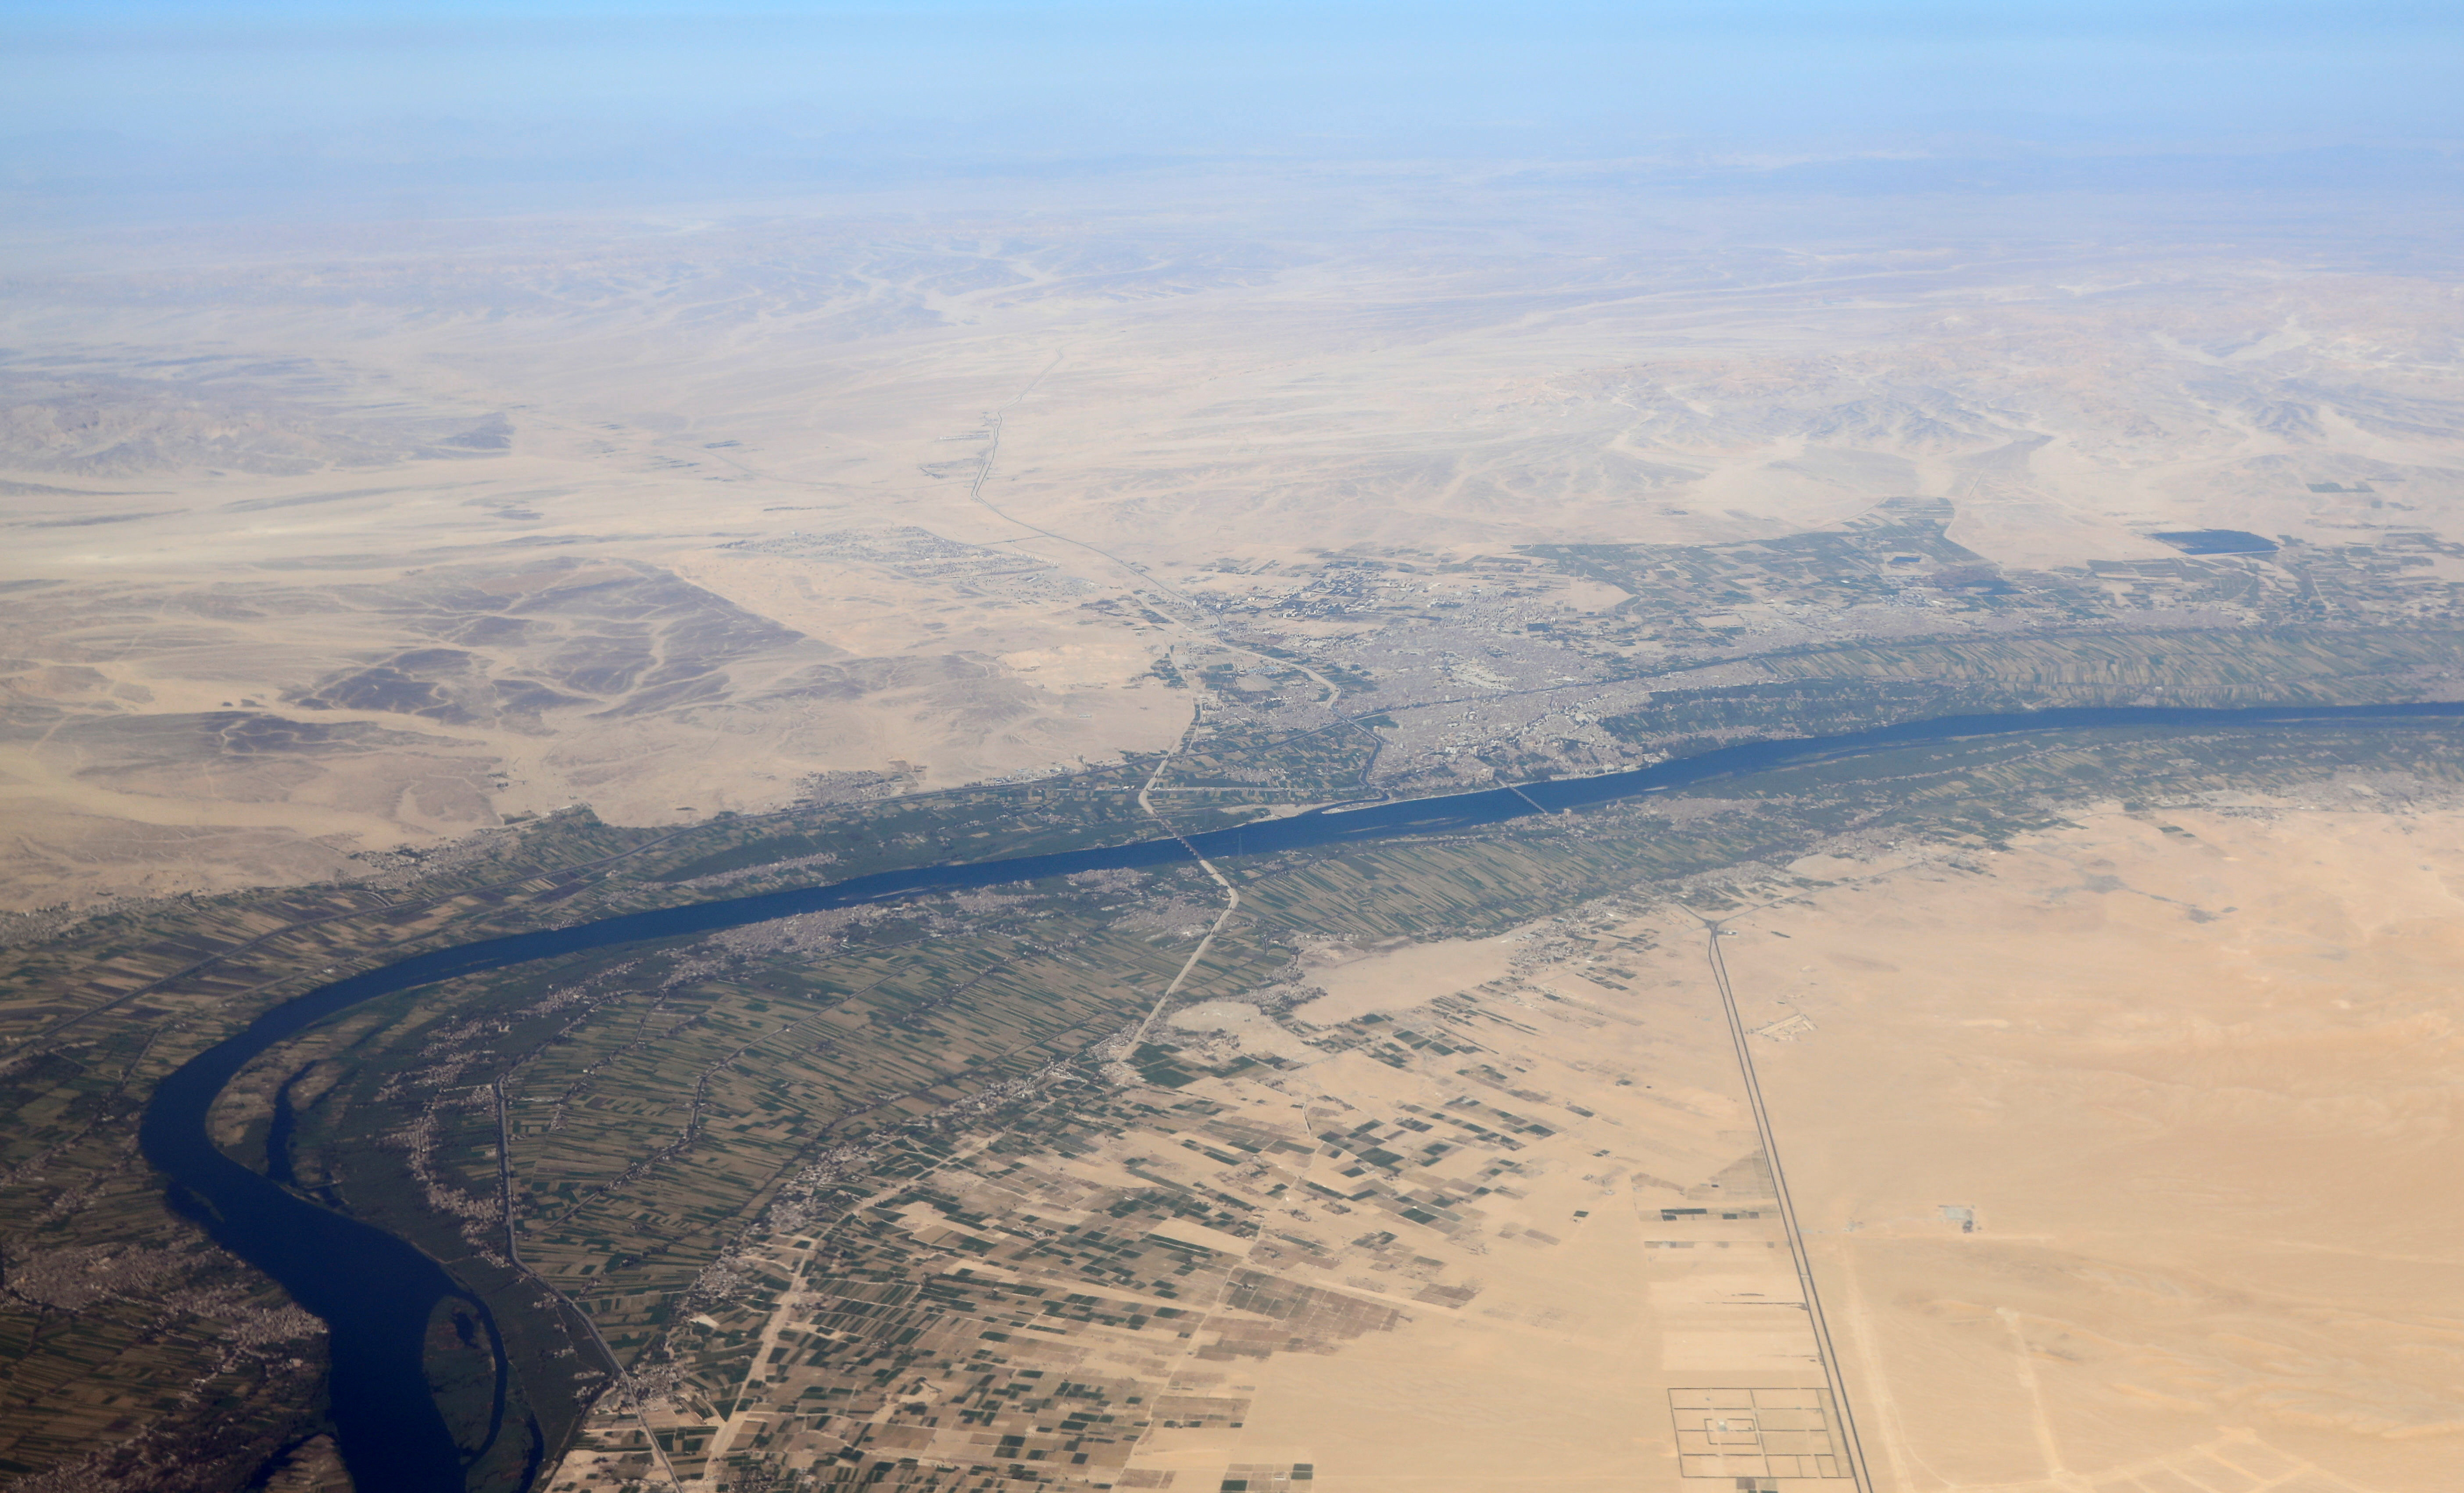 this is the river Nile. The Nile basin, which is the area of land from which all the water flows into the Nile River, is currently prone to flooding and needs greater climate resilience